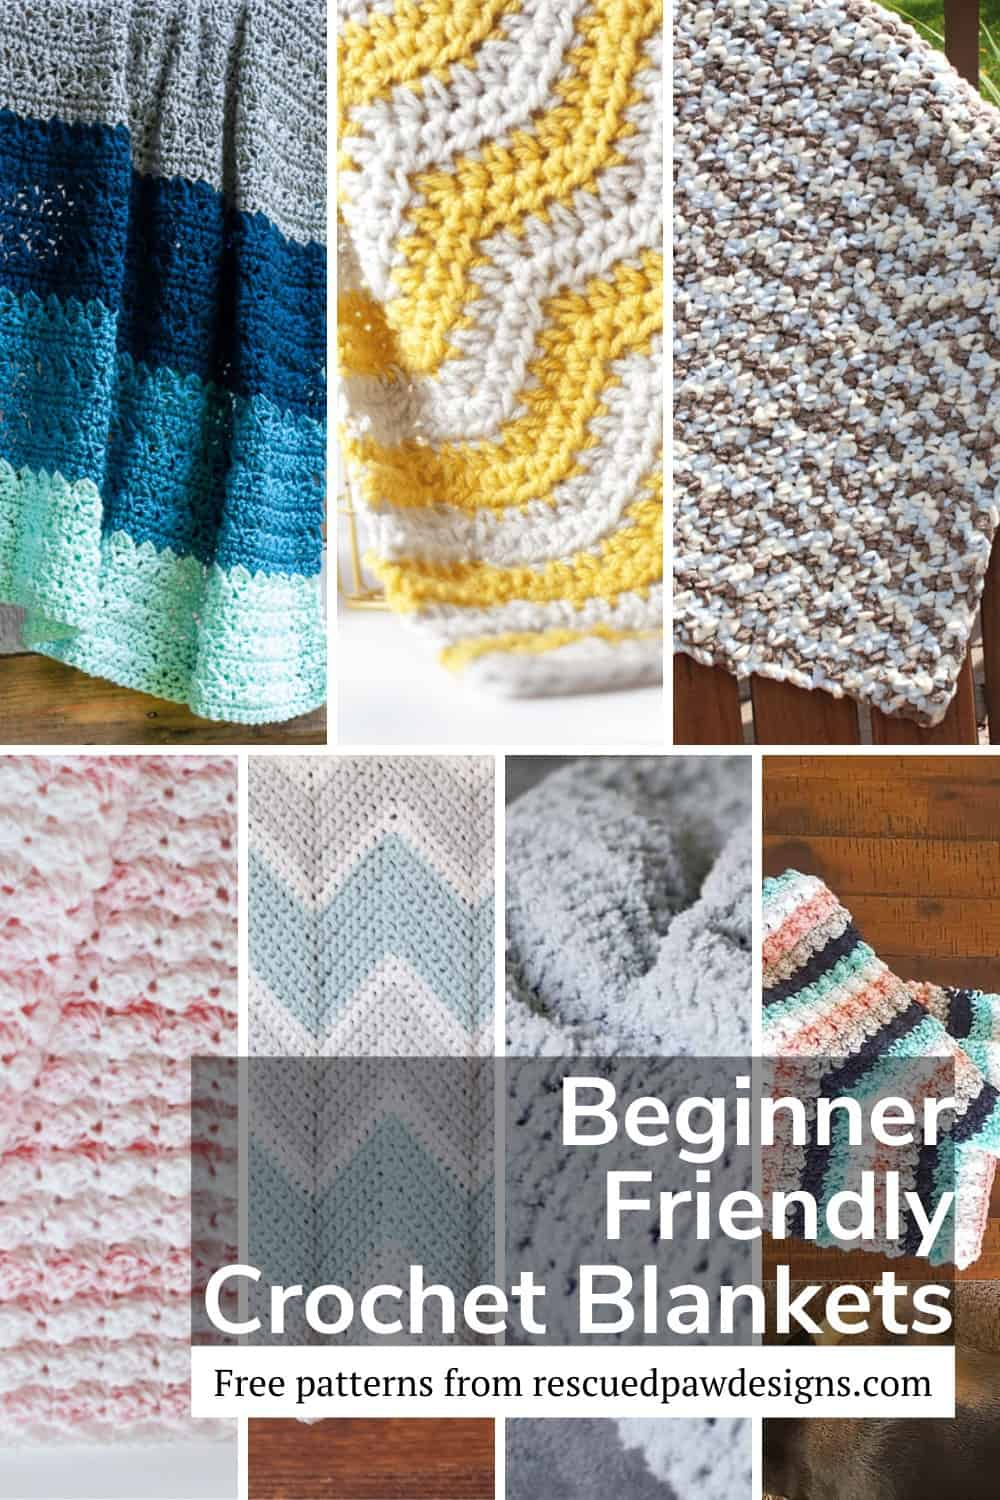 Easy Free Crochet Baby Blanket Patterns Easycrochet Com,Show Me A Picture Of A Sparrow